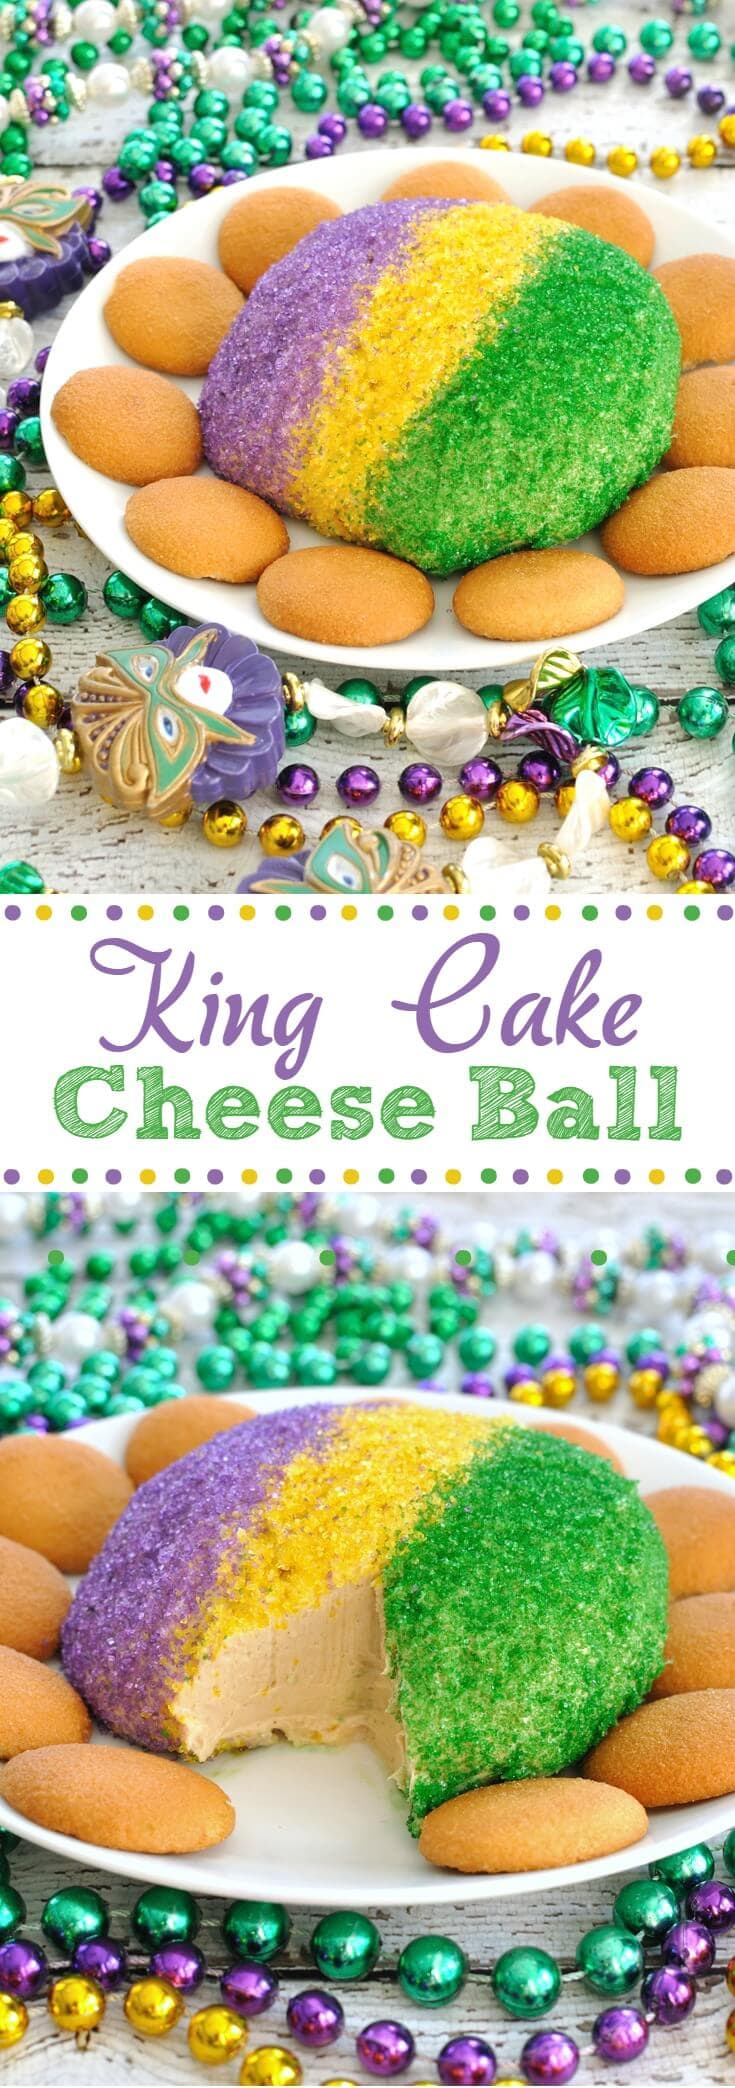 King Cake Cheese Ball for Mardi Gras